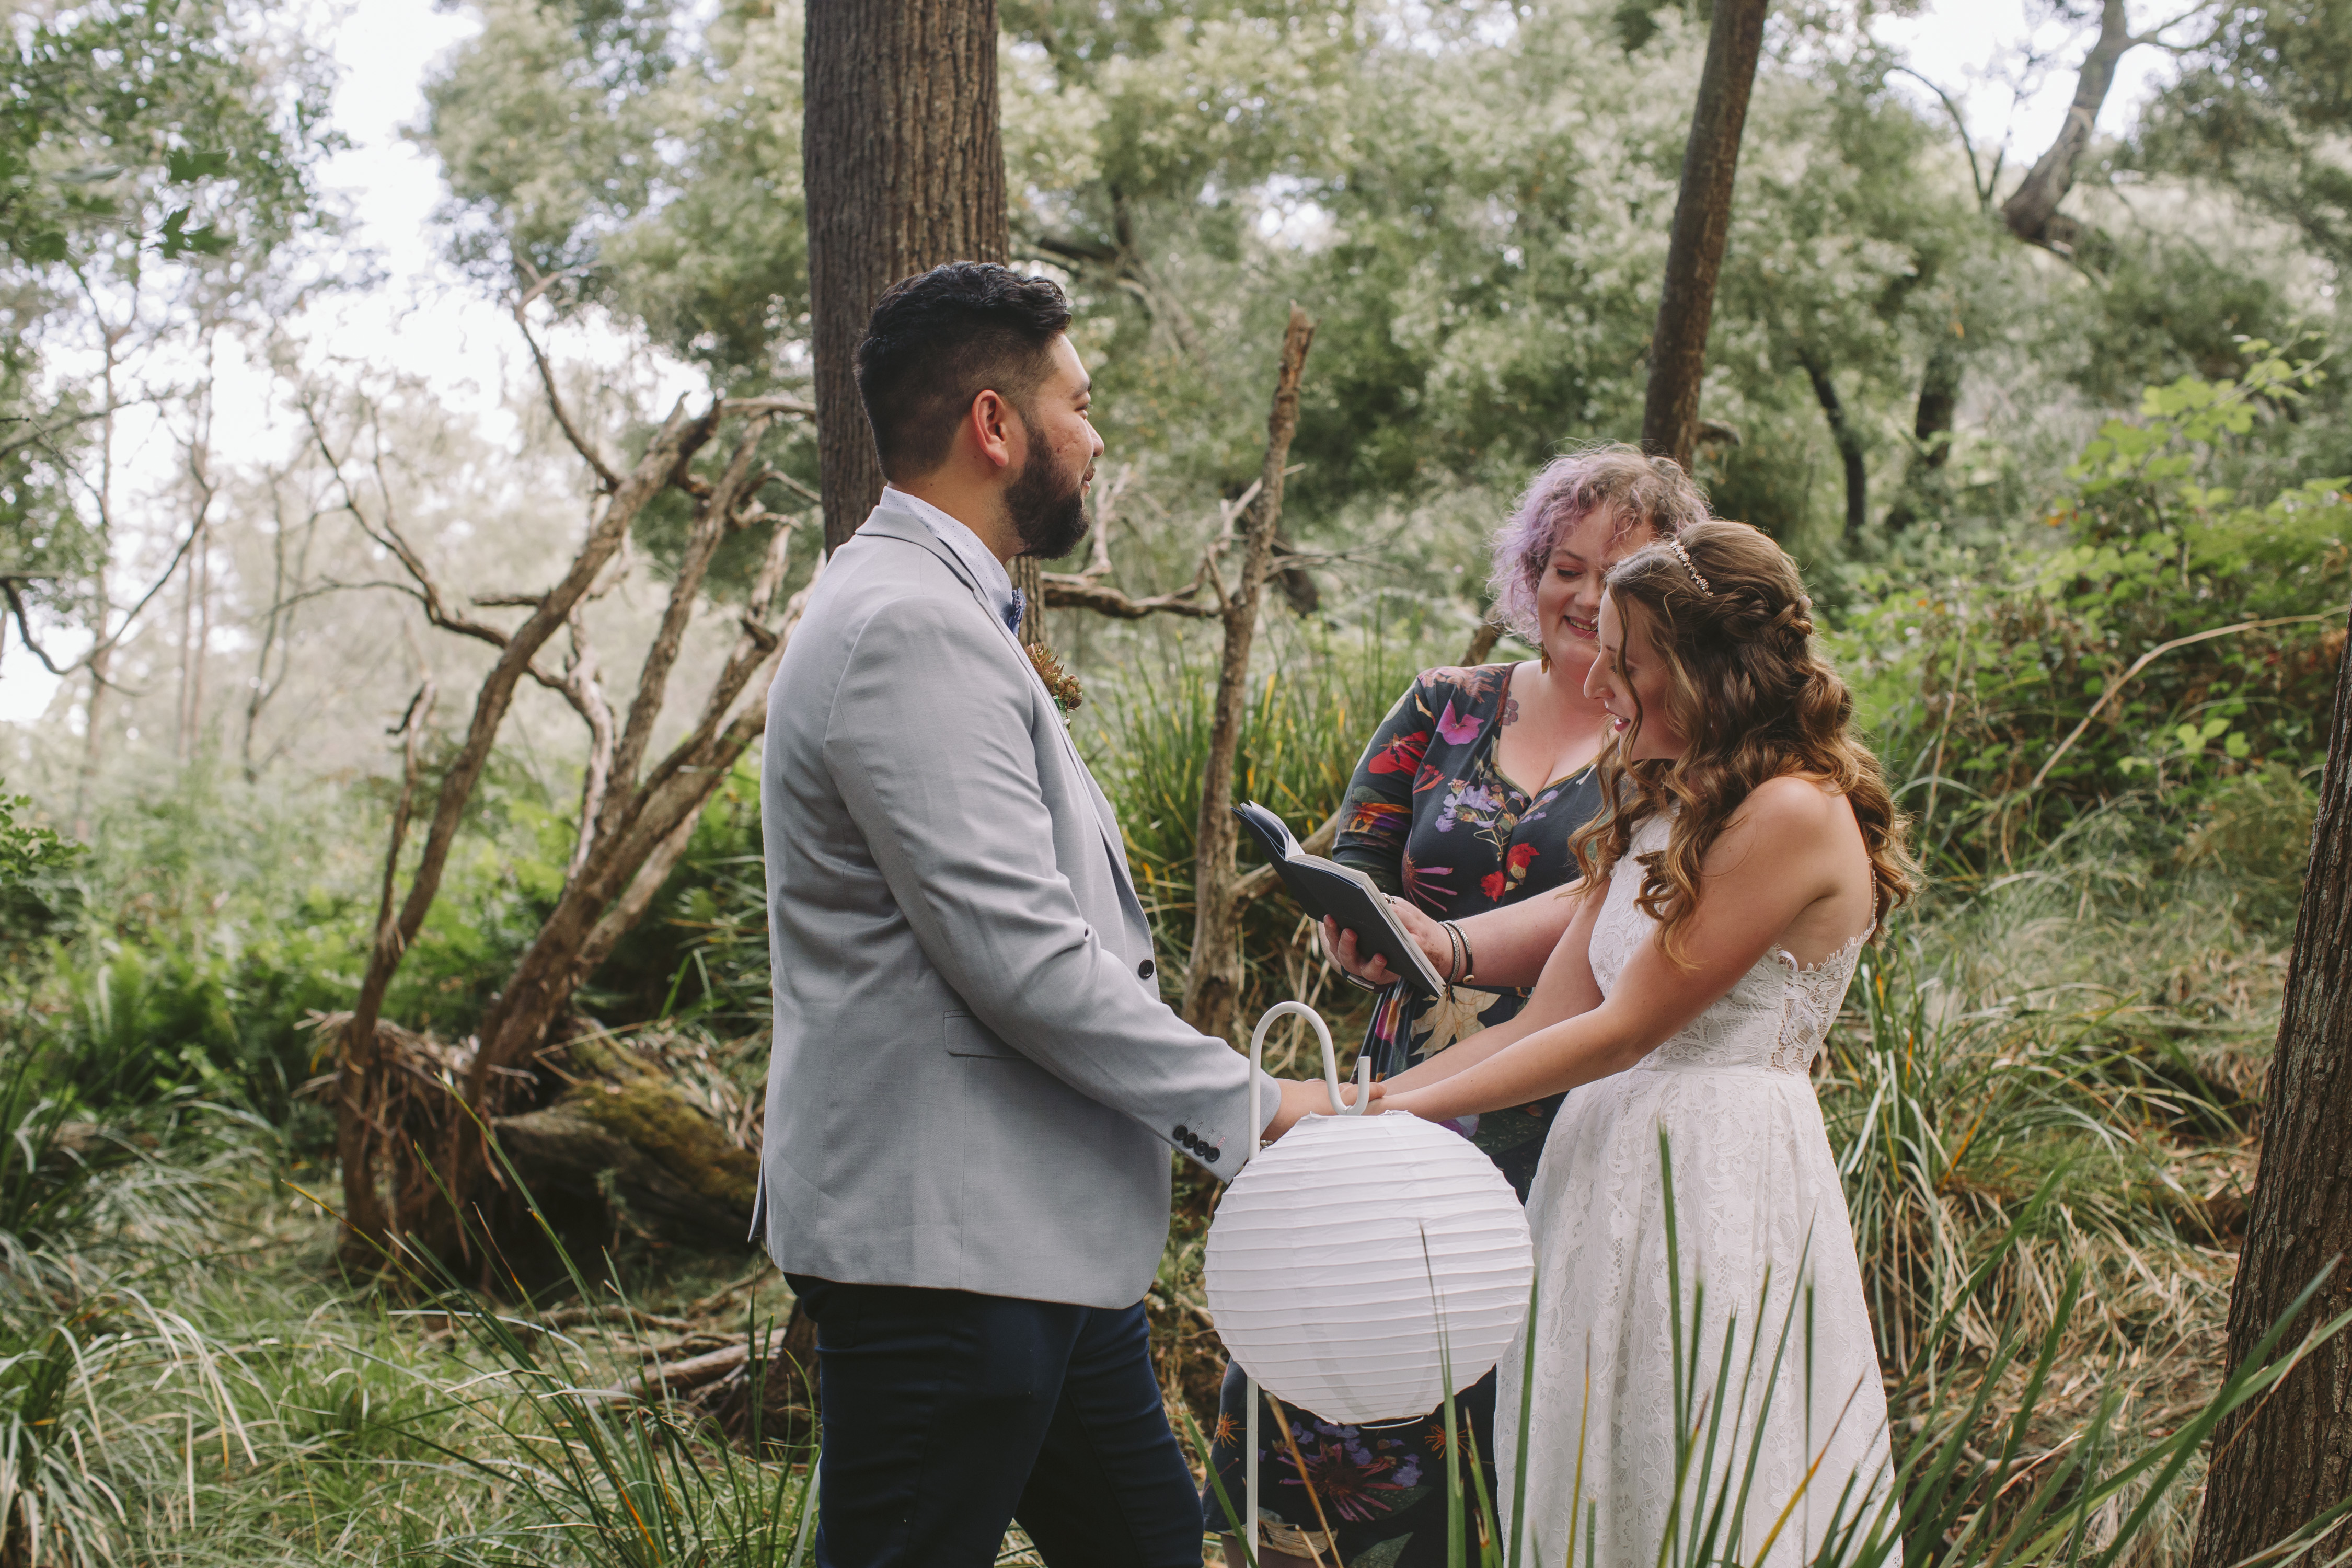 two people are getting married, holding hands in a bush setting, and a third person is leaning in with their vows for them to read